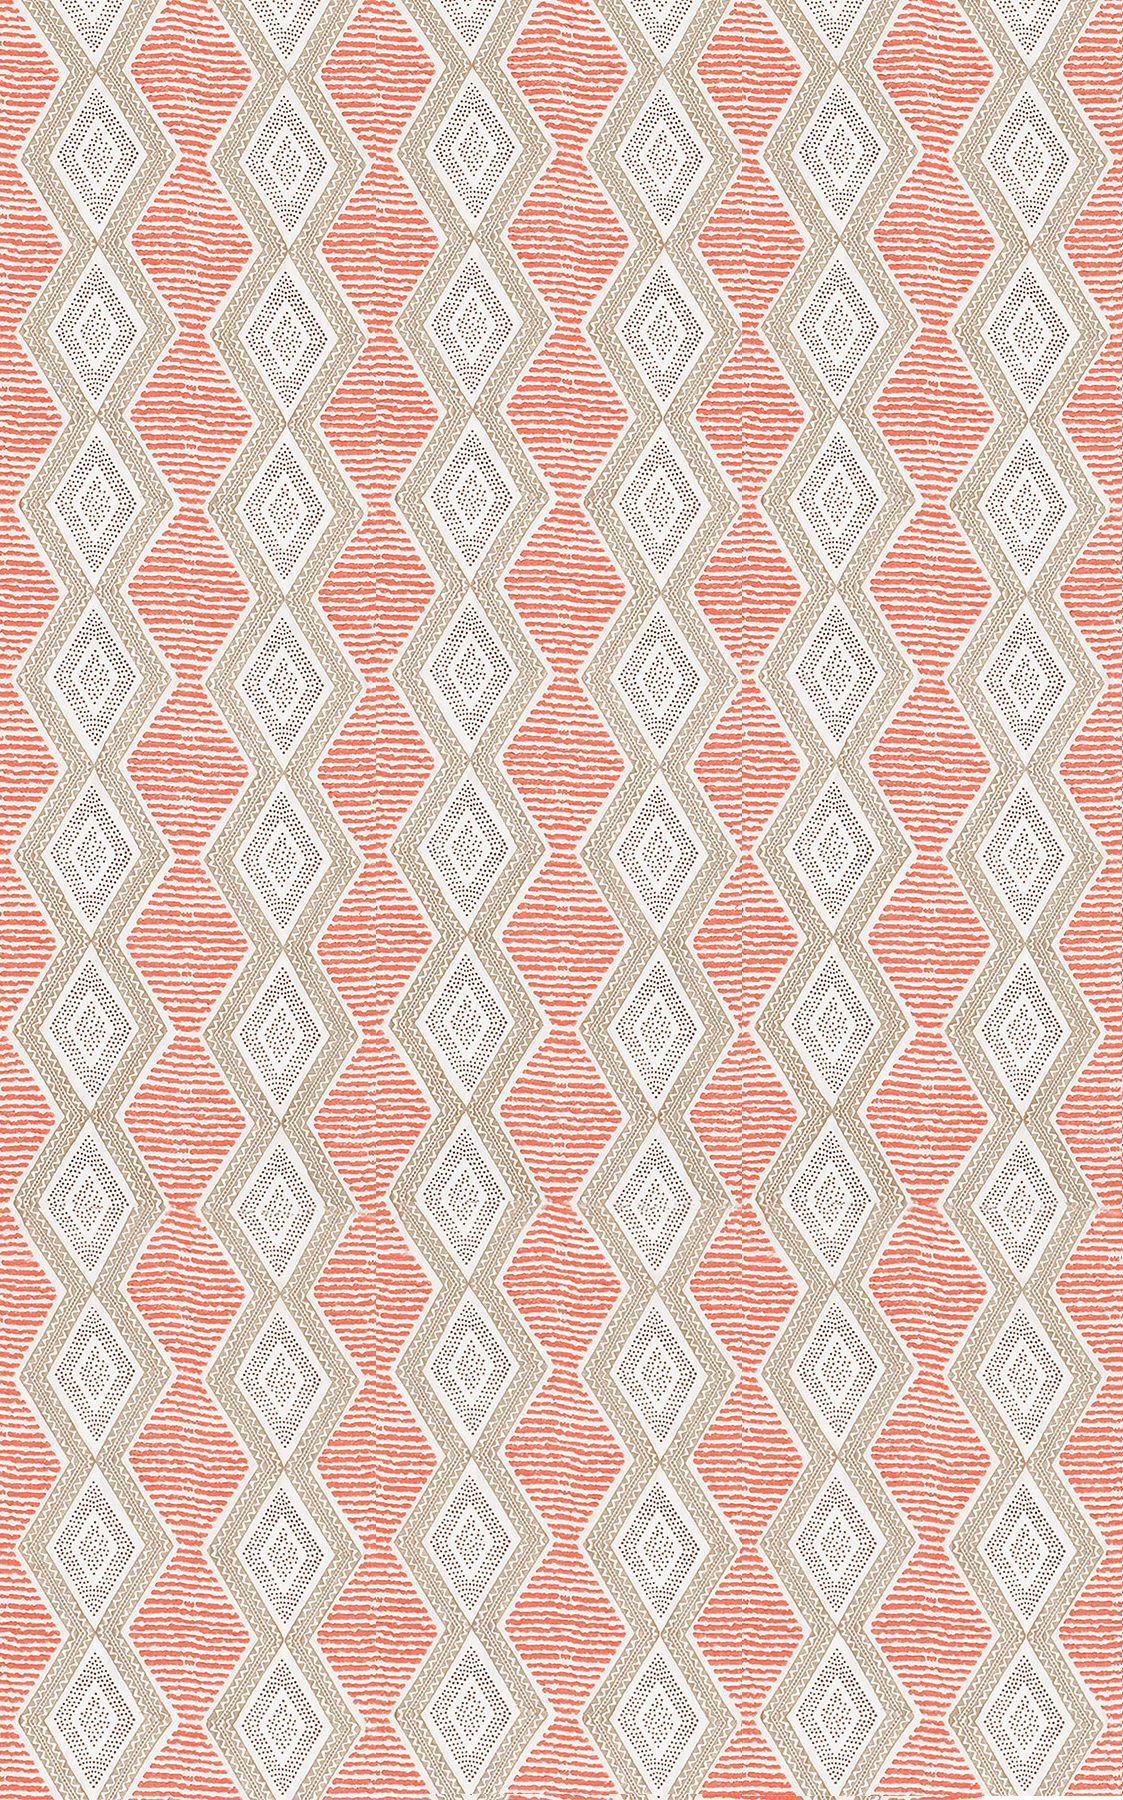 Nina Campbell Belle Ile Coral / Beige / Chocolate Fabric - Product code: NCF4291-01